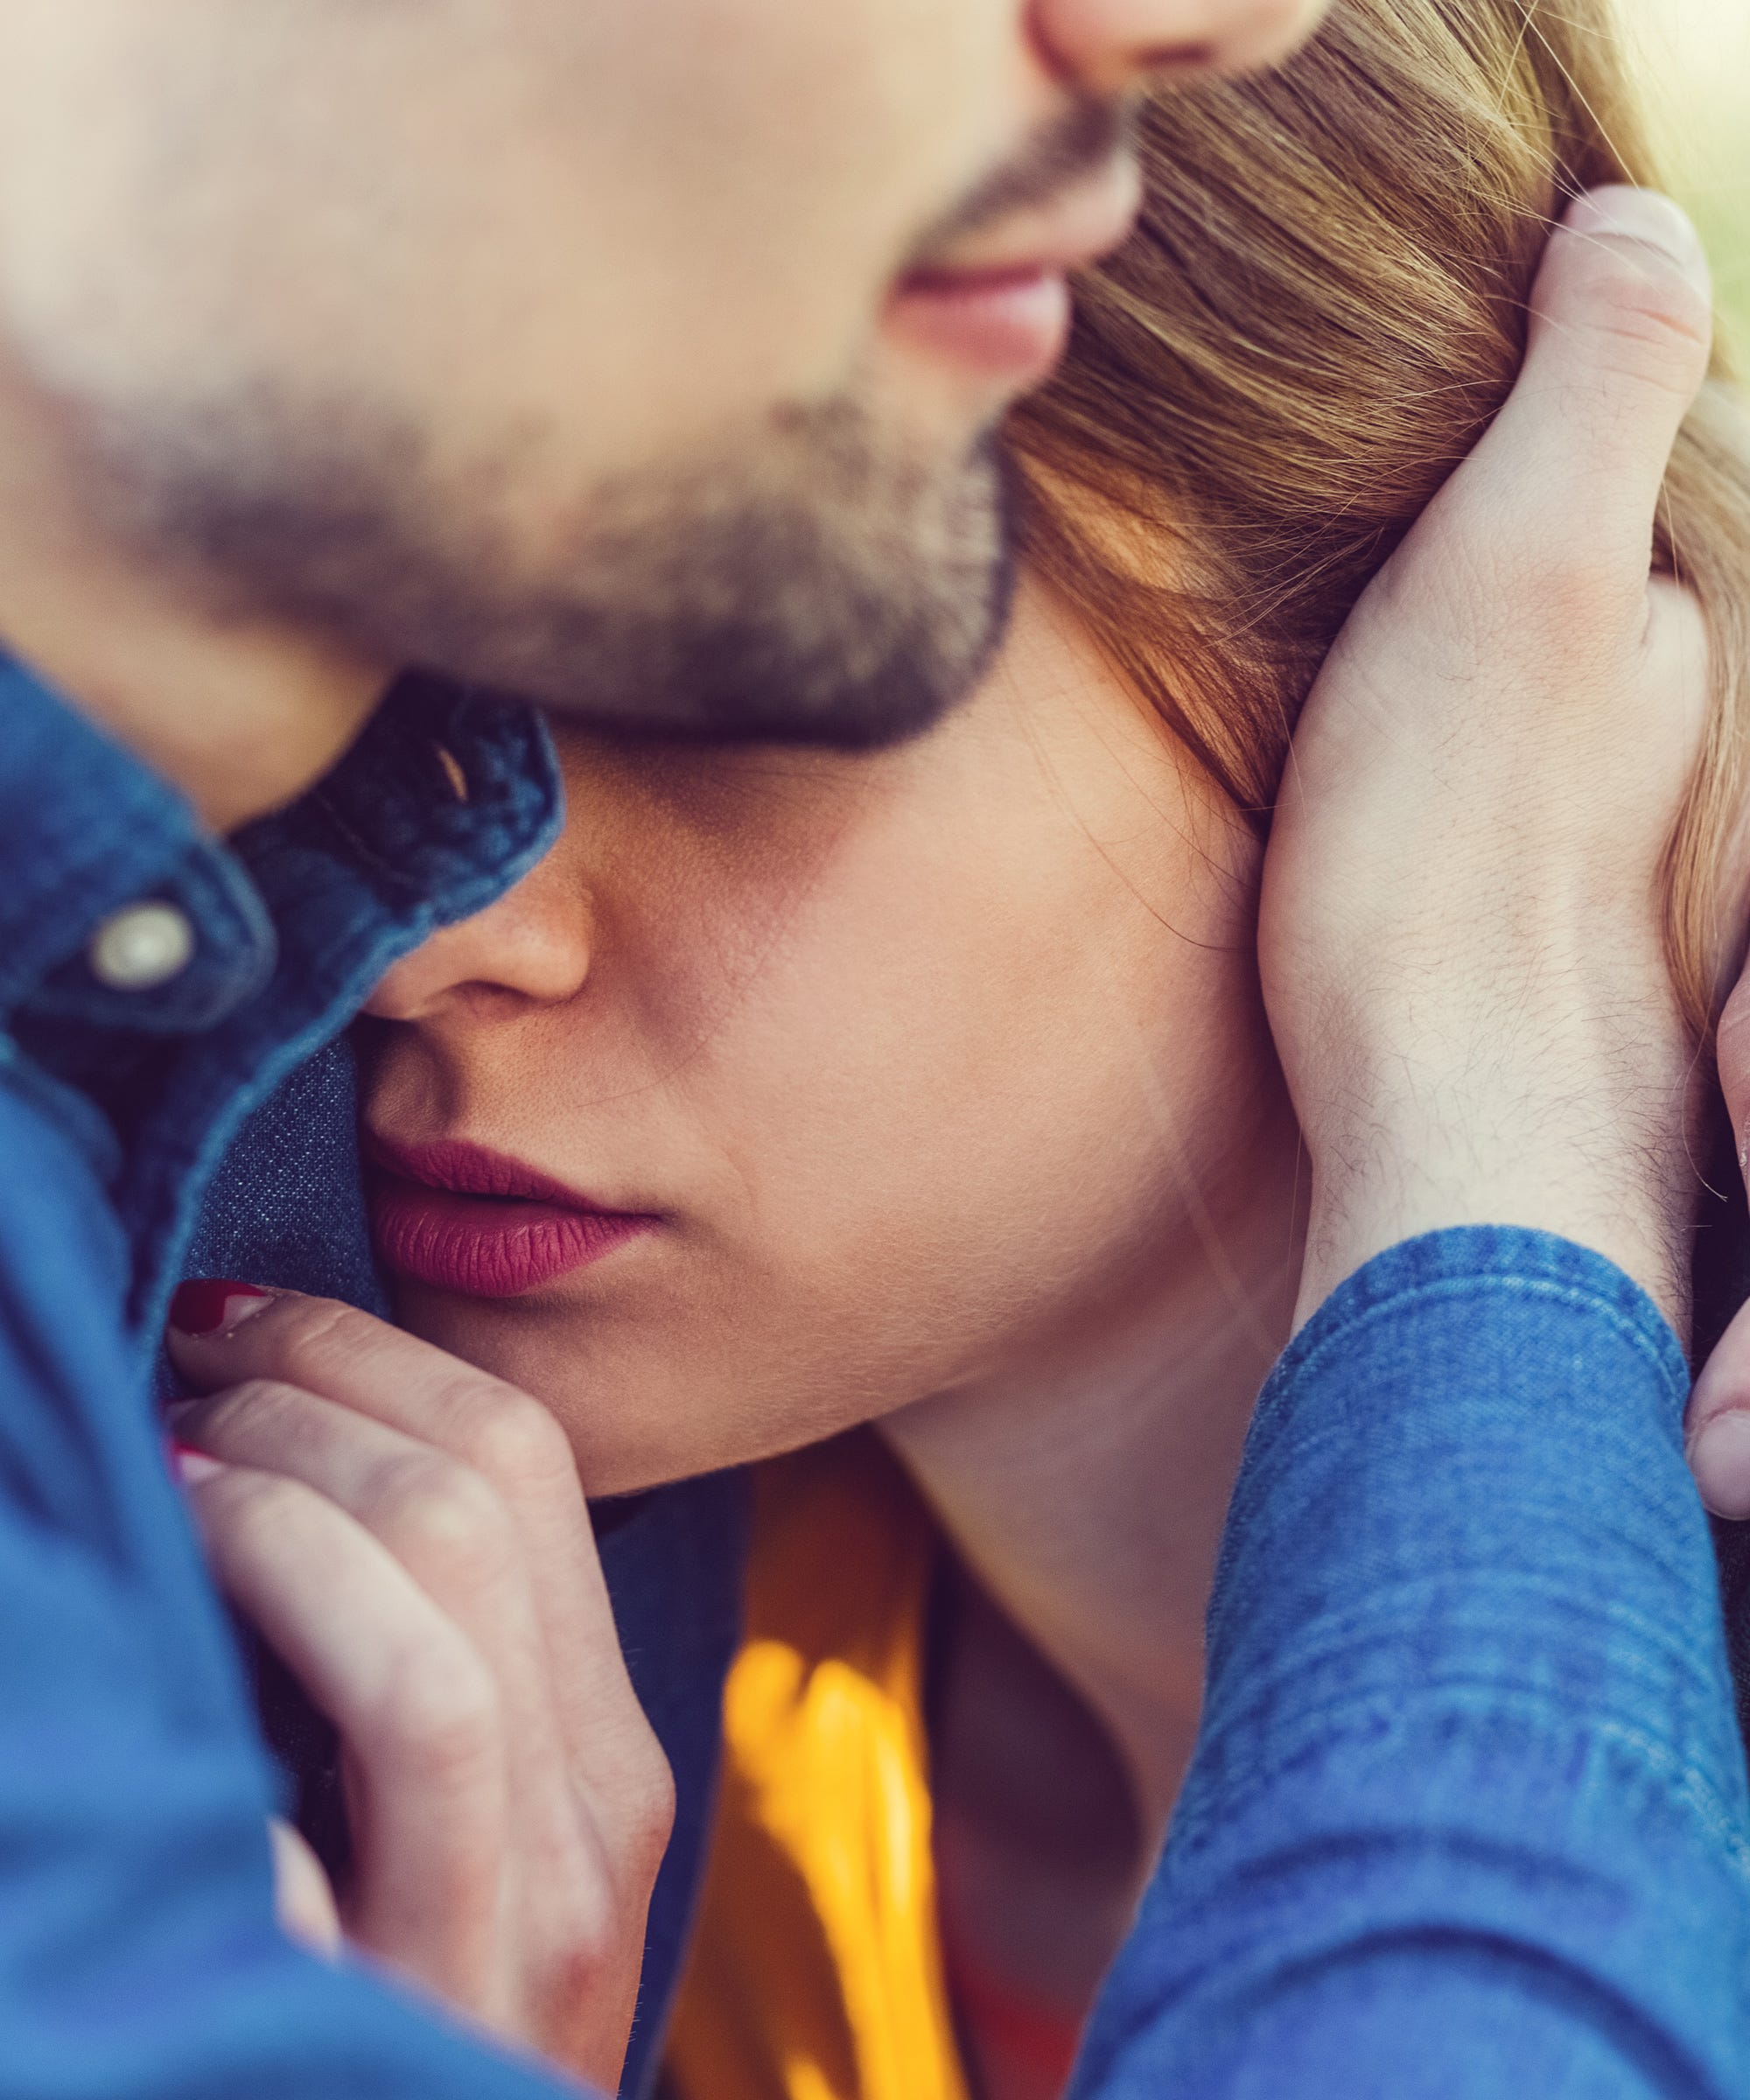 This Guy Has The Best Way Of Handling His Girlfriend's Anxiety